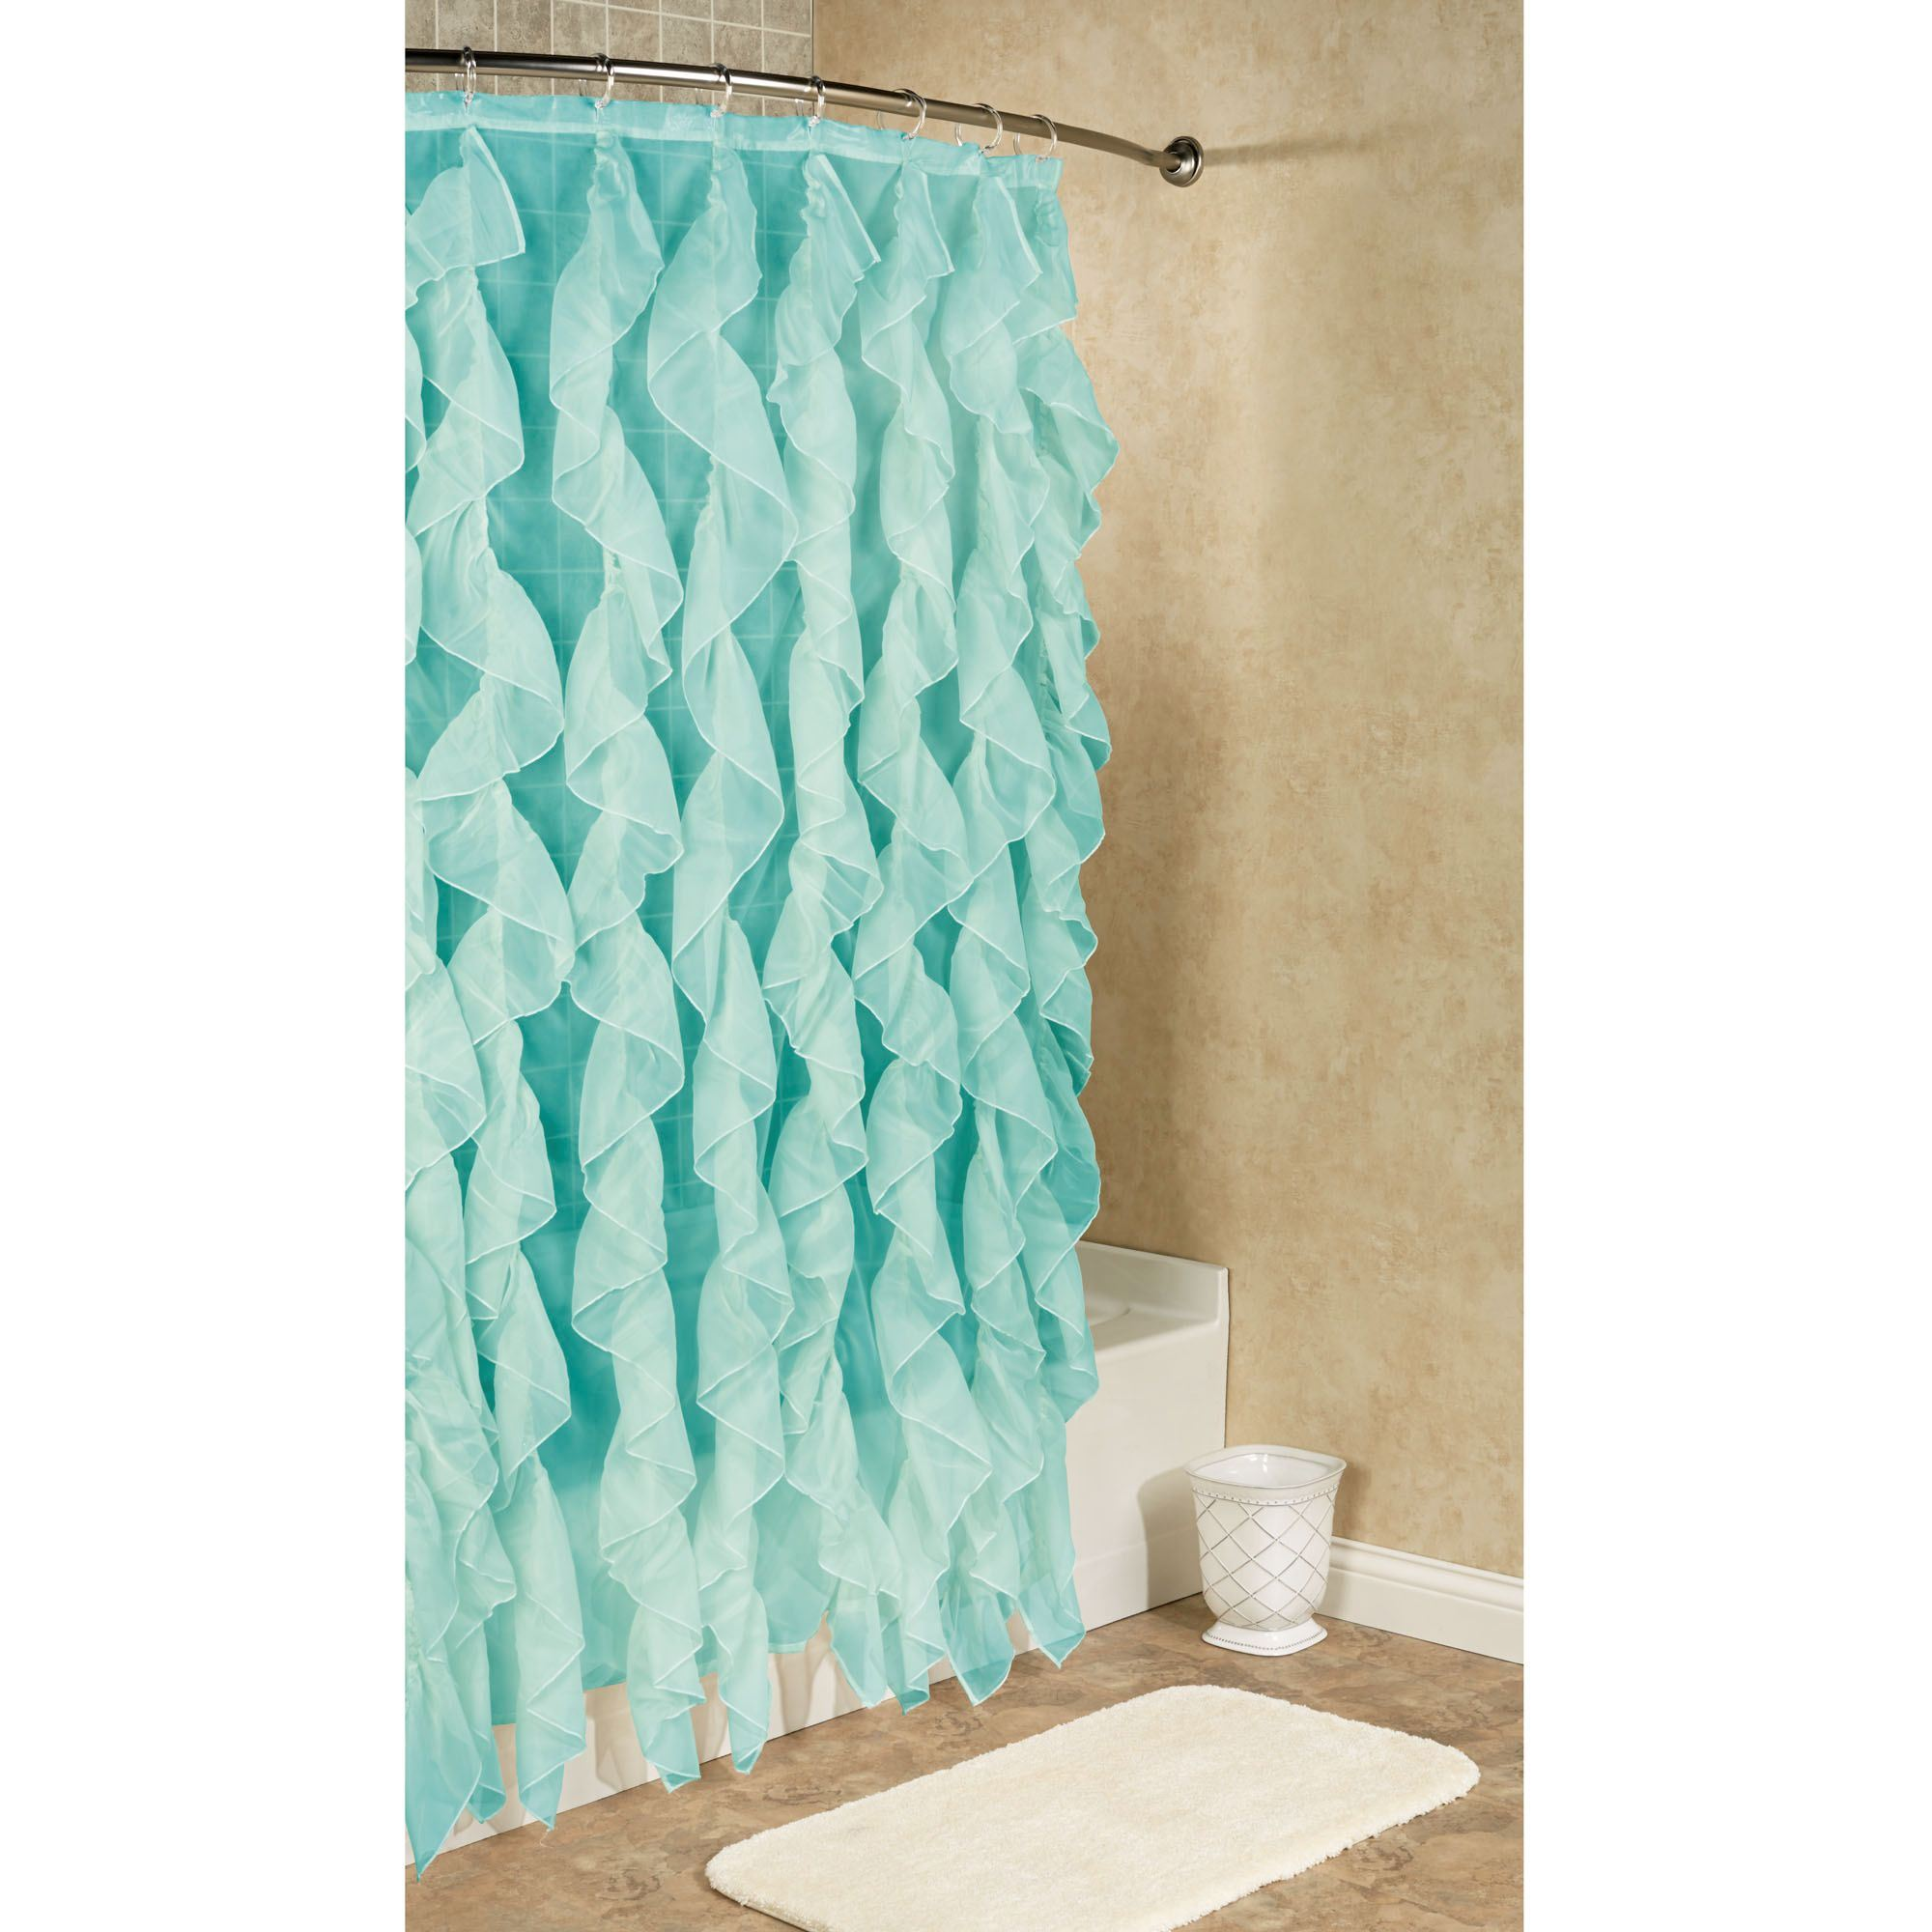 Turquoise And Coral Shower Curtain. Cascade Voile Shower Curtain 70 x 72 Ruffled